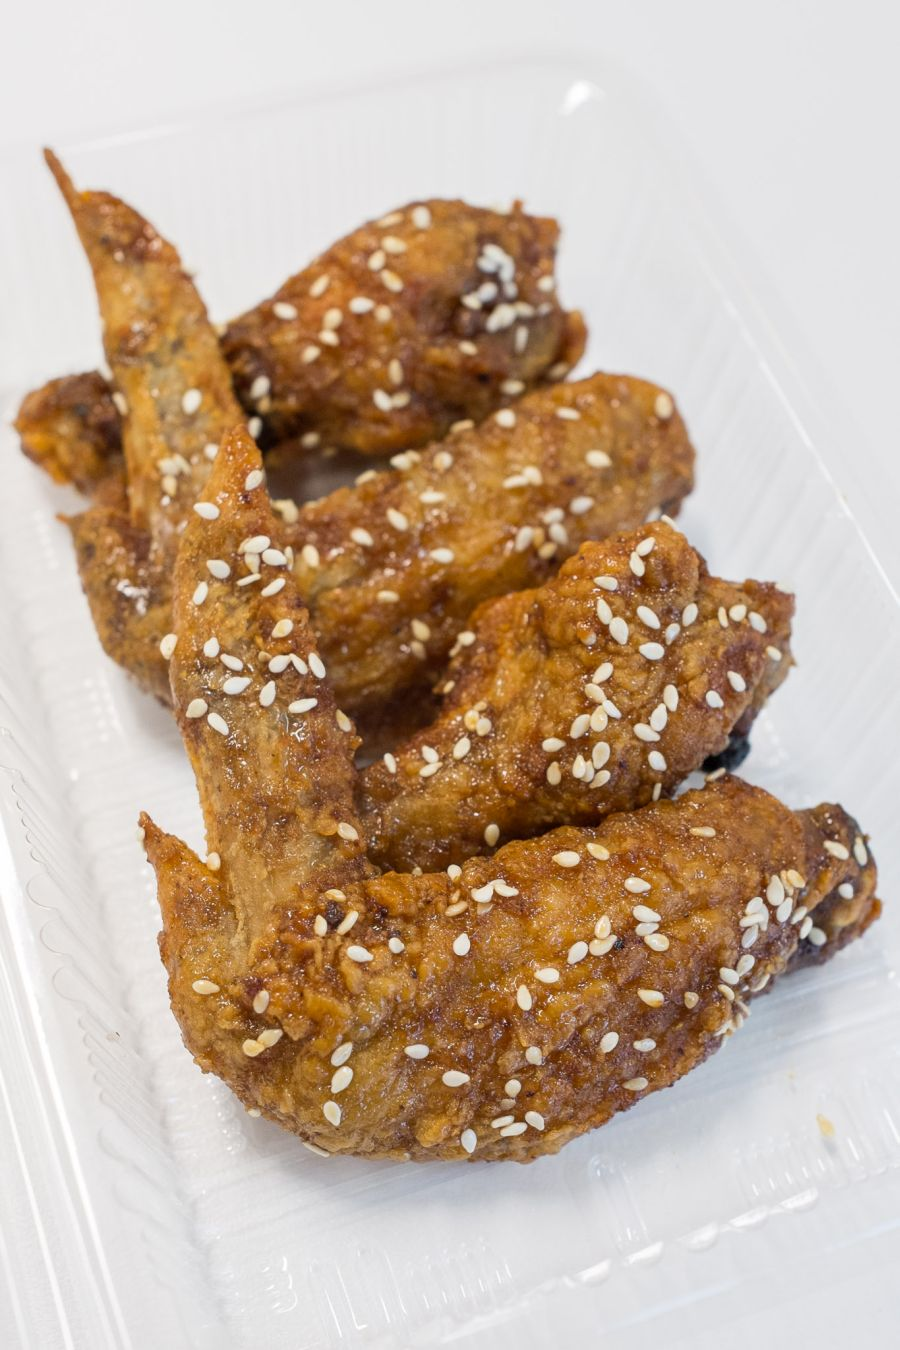 Nagoya no Tebasaki (Nagoya Deep Fried Chicken Wings - AU$1.50 each)